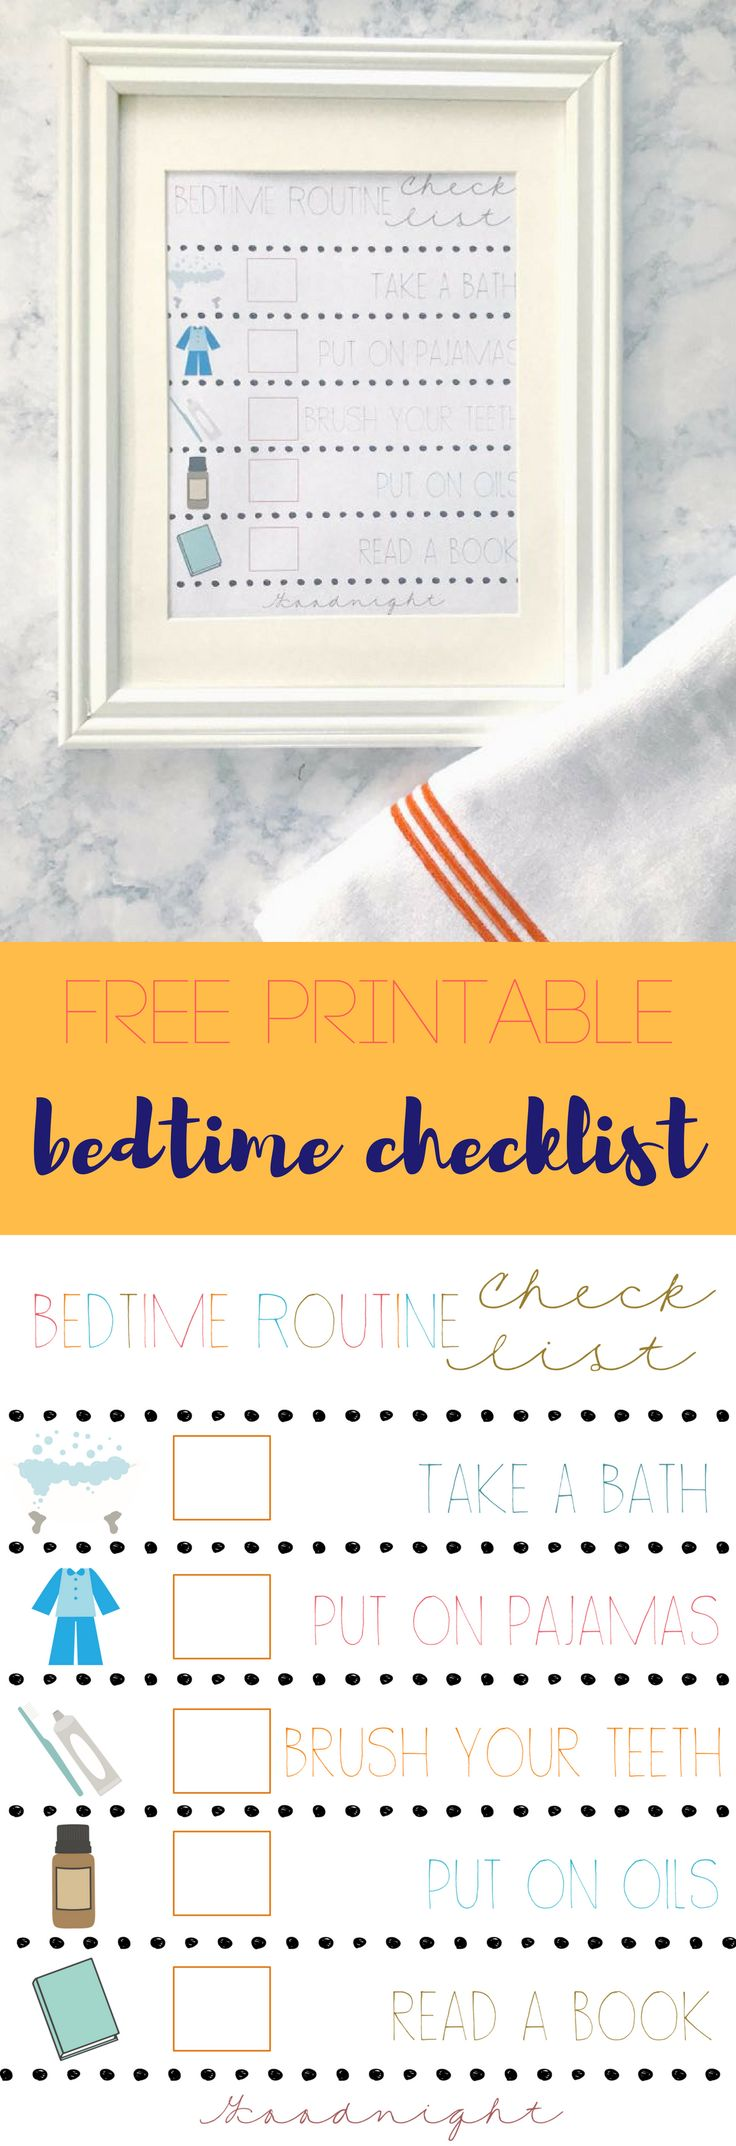 Bedtime Routine for Kids, Toddler Bedtime Routine, Printable Bedtime Routine; Bedtime Routine Checklist; Back to School Checklist; School Night Checklist; Nested Bean bag, Petite Plume Pajamas Gingham pajamas  Printable bedtime routine chart to help your kids transition to bedtime smoothly and help with independence for the evening routines.